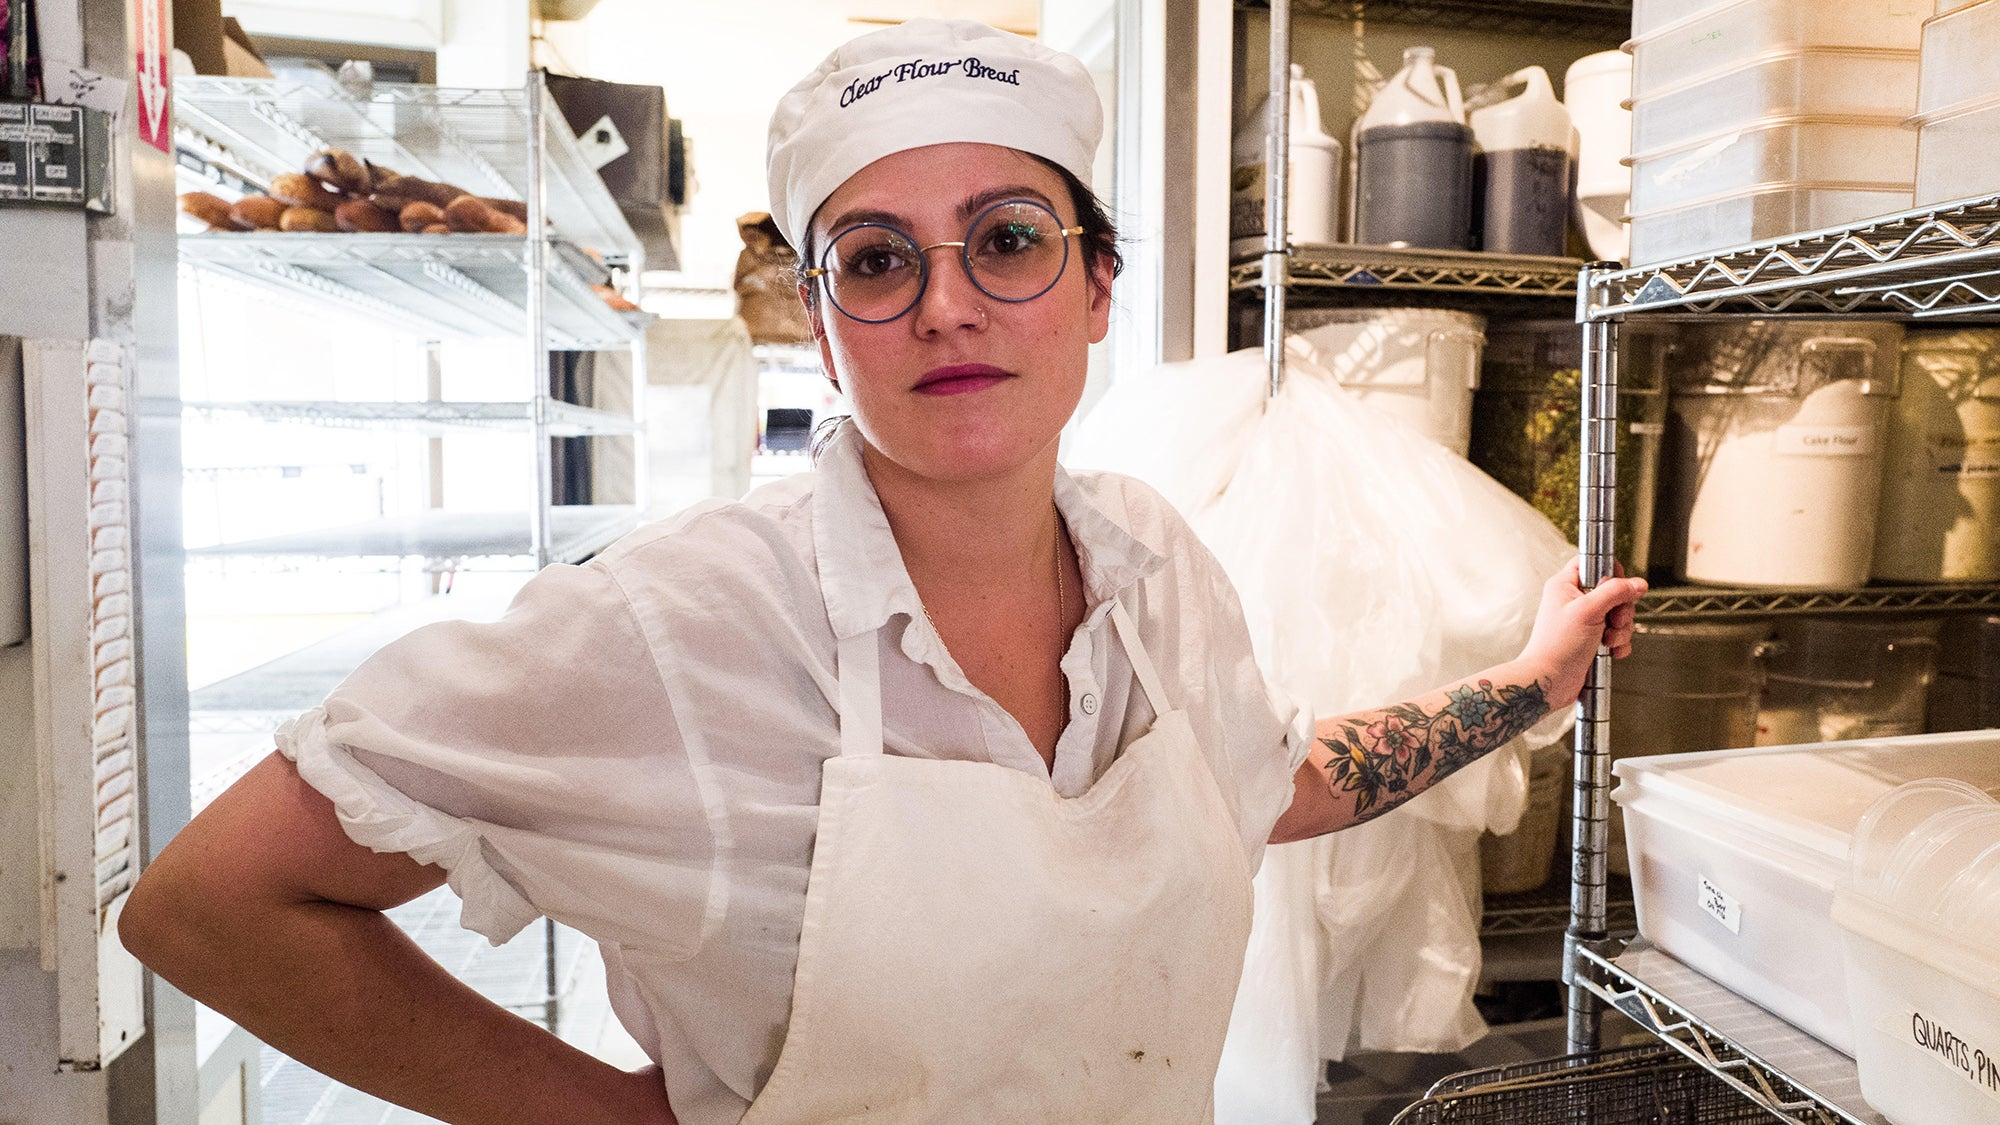 Clear Flour Bread co-owner Nicole Walsh